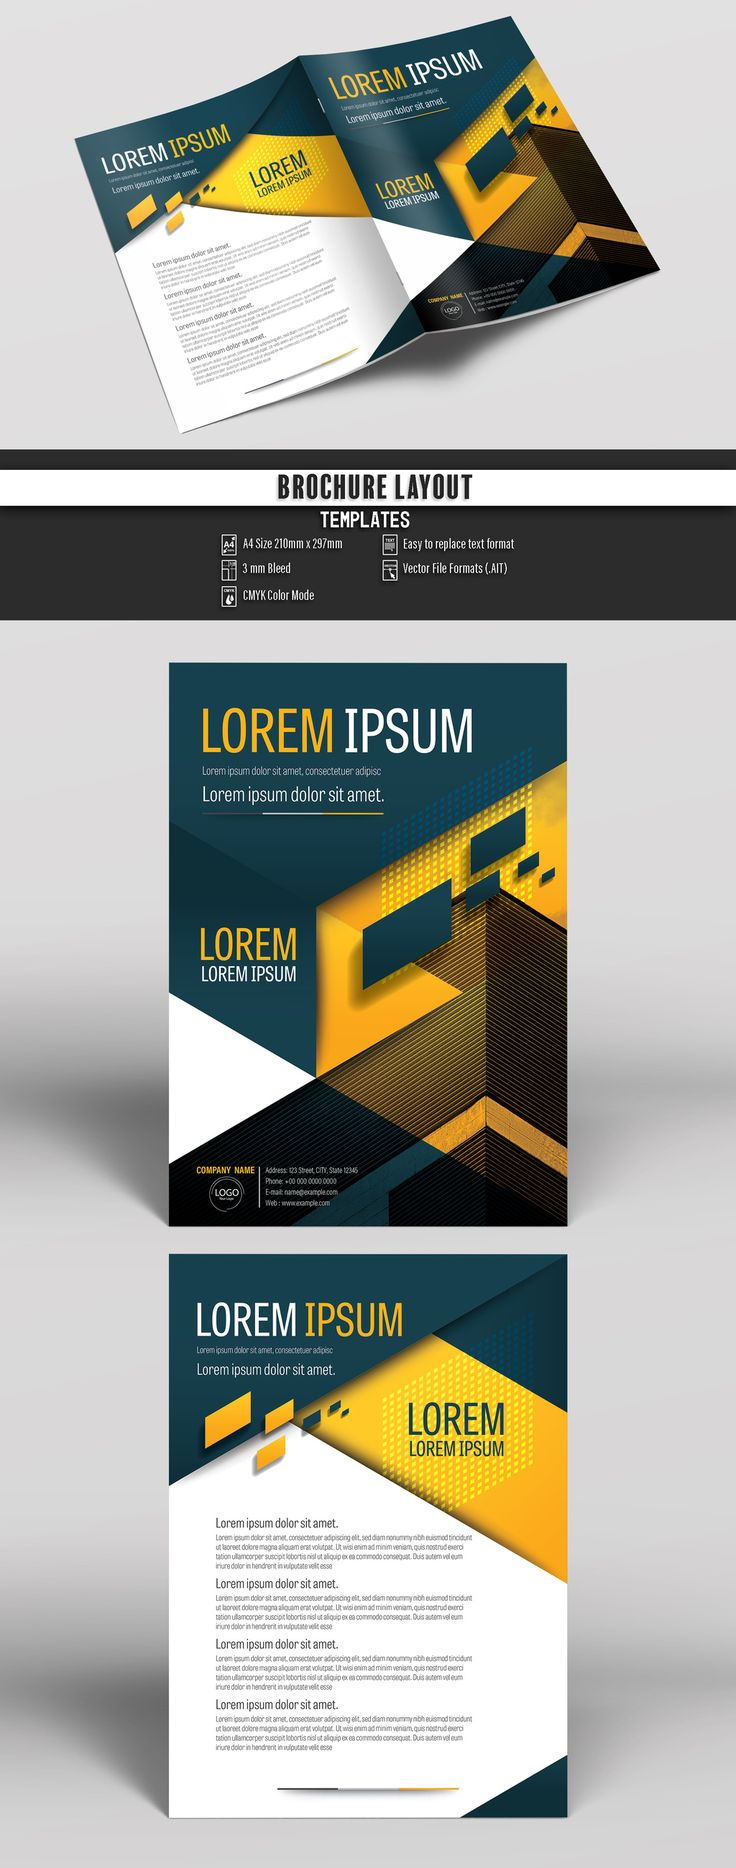 how to create a proposal template in word%0A Buy this stock template and explore similar templates at Adobe Stock   Brochure  Business  Proposal  Booklet  Flyer  Template  Design  Layout   Cover  Book